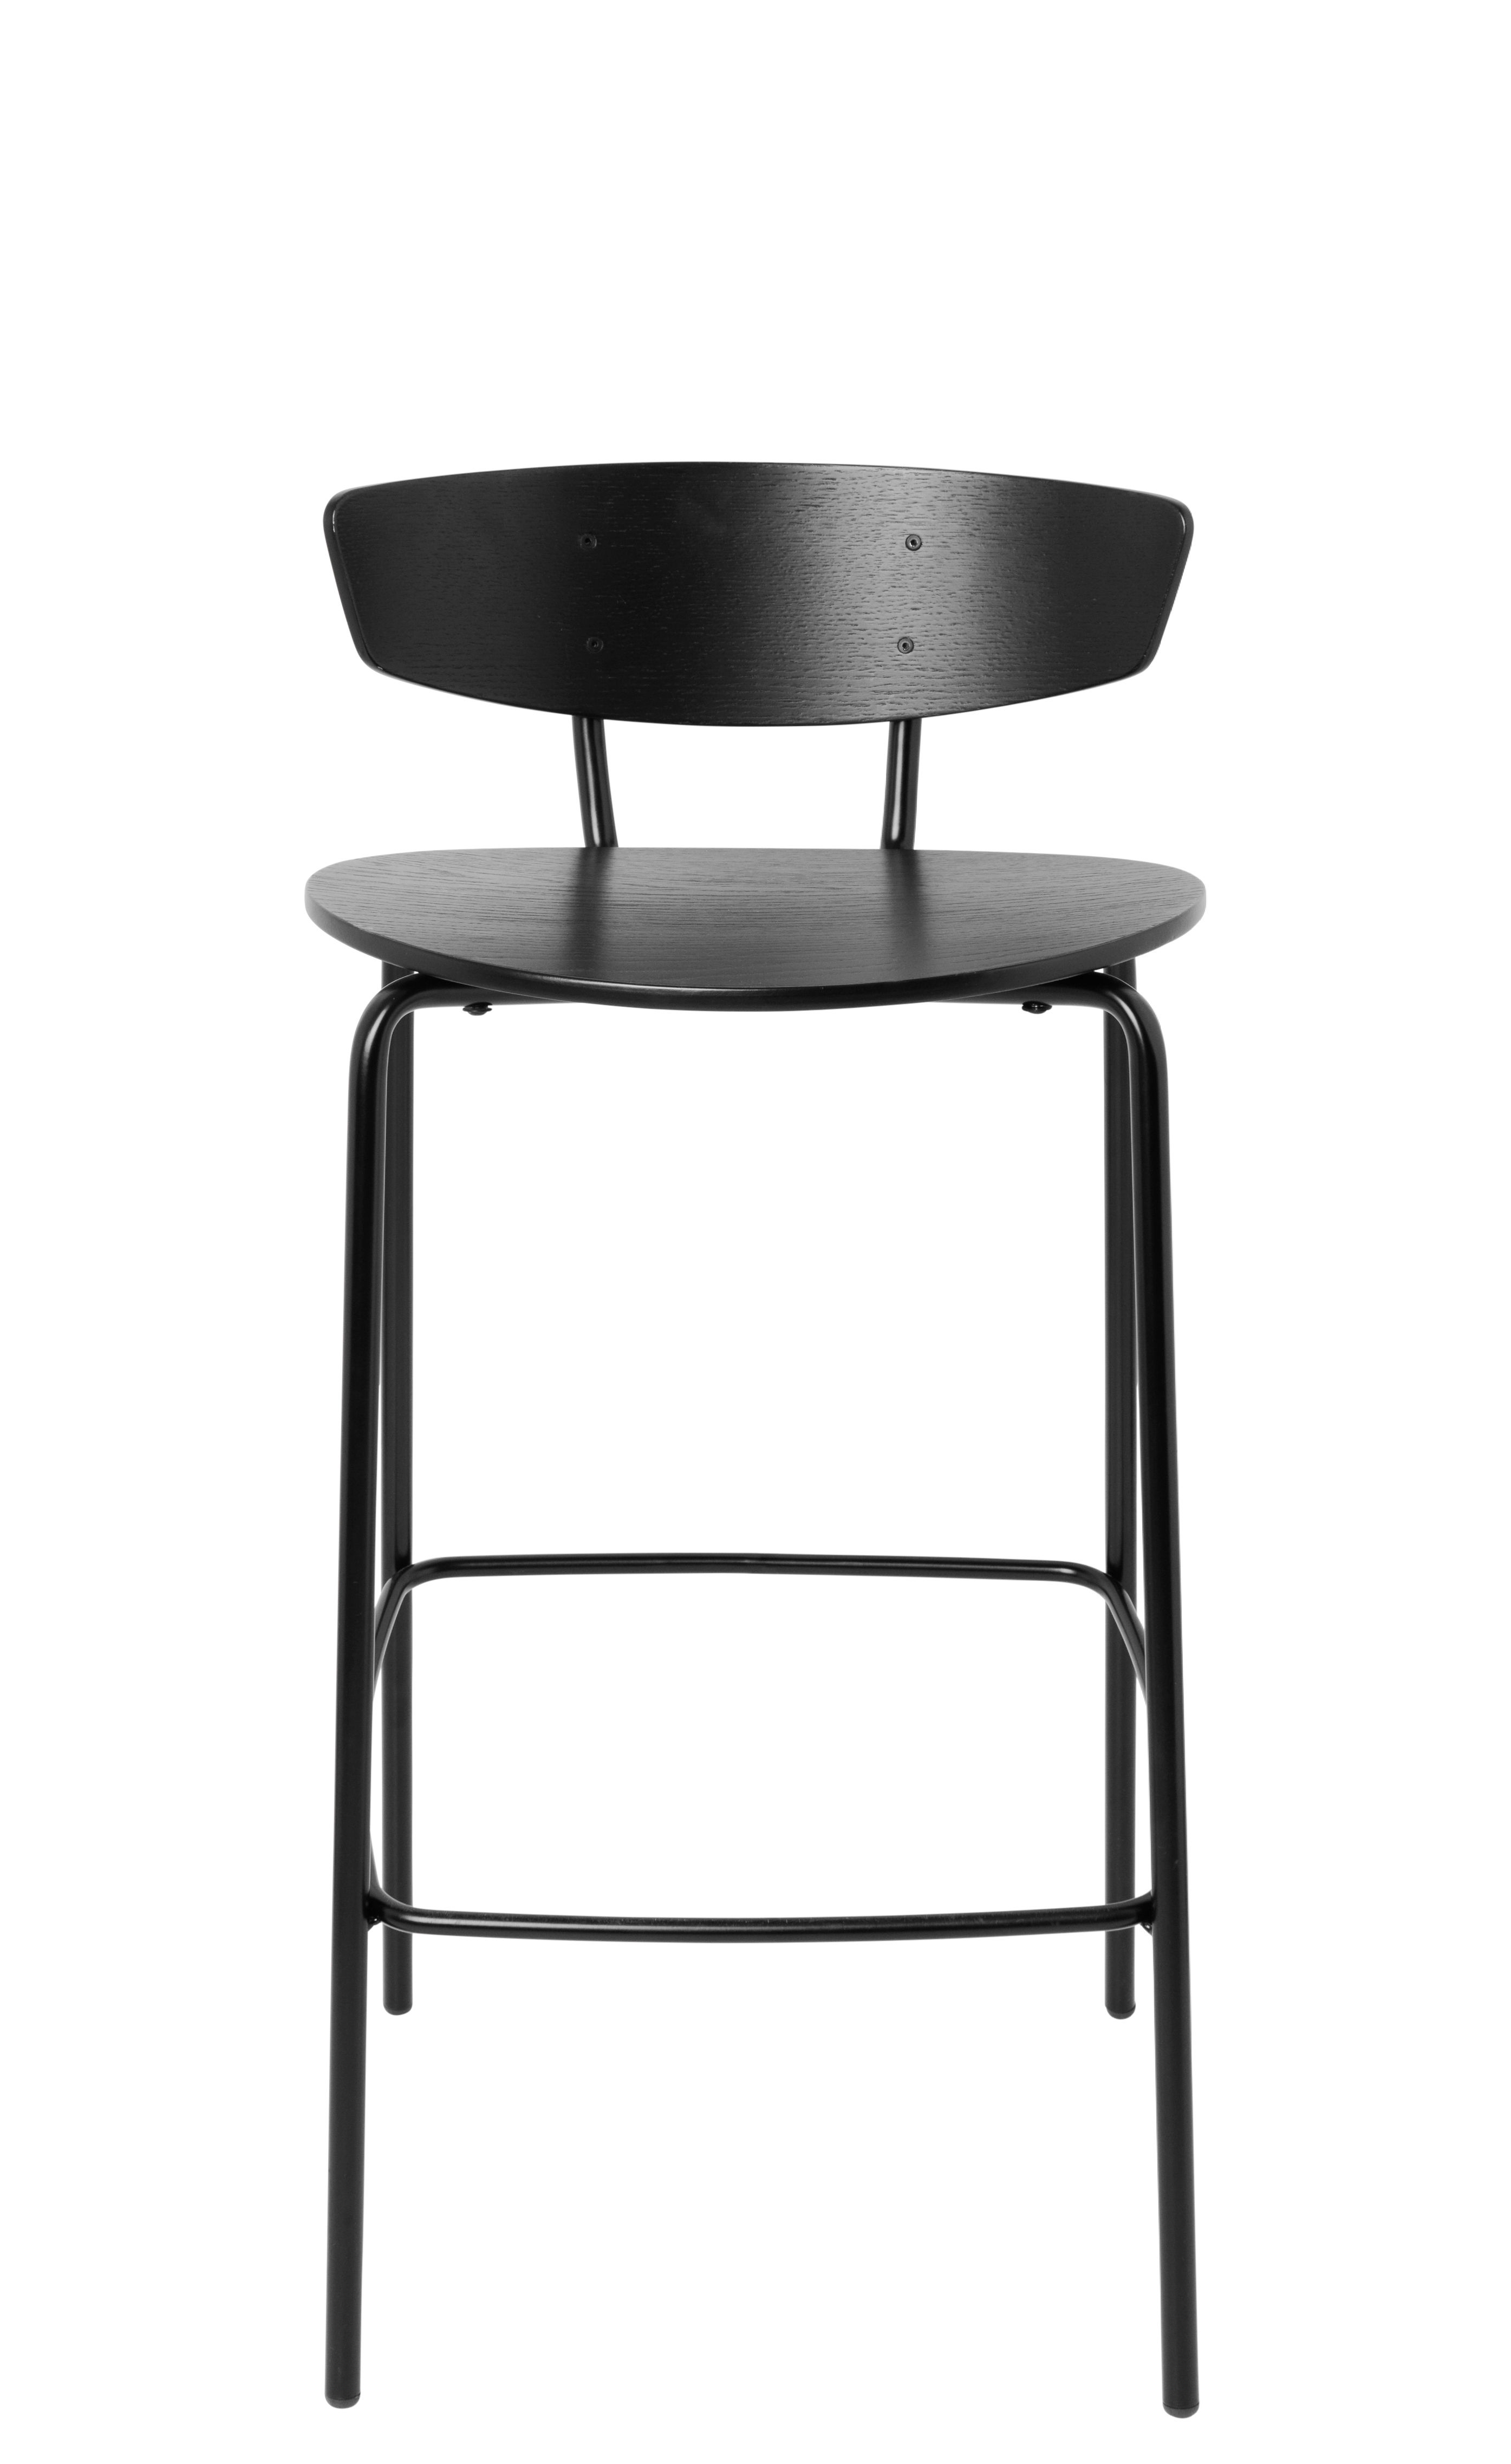 Furniture - Bar Stools - Herman Bar chair - / H 64 cm by Ferm Living - Large H 64 cm / Noir - Epoxy lacquered steel, Lacquered oak plywood